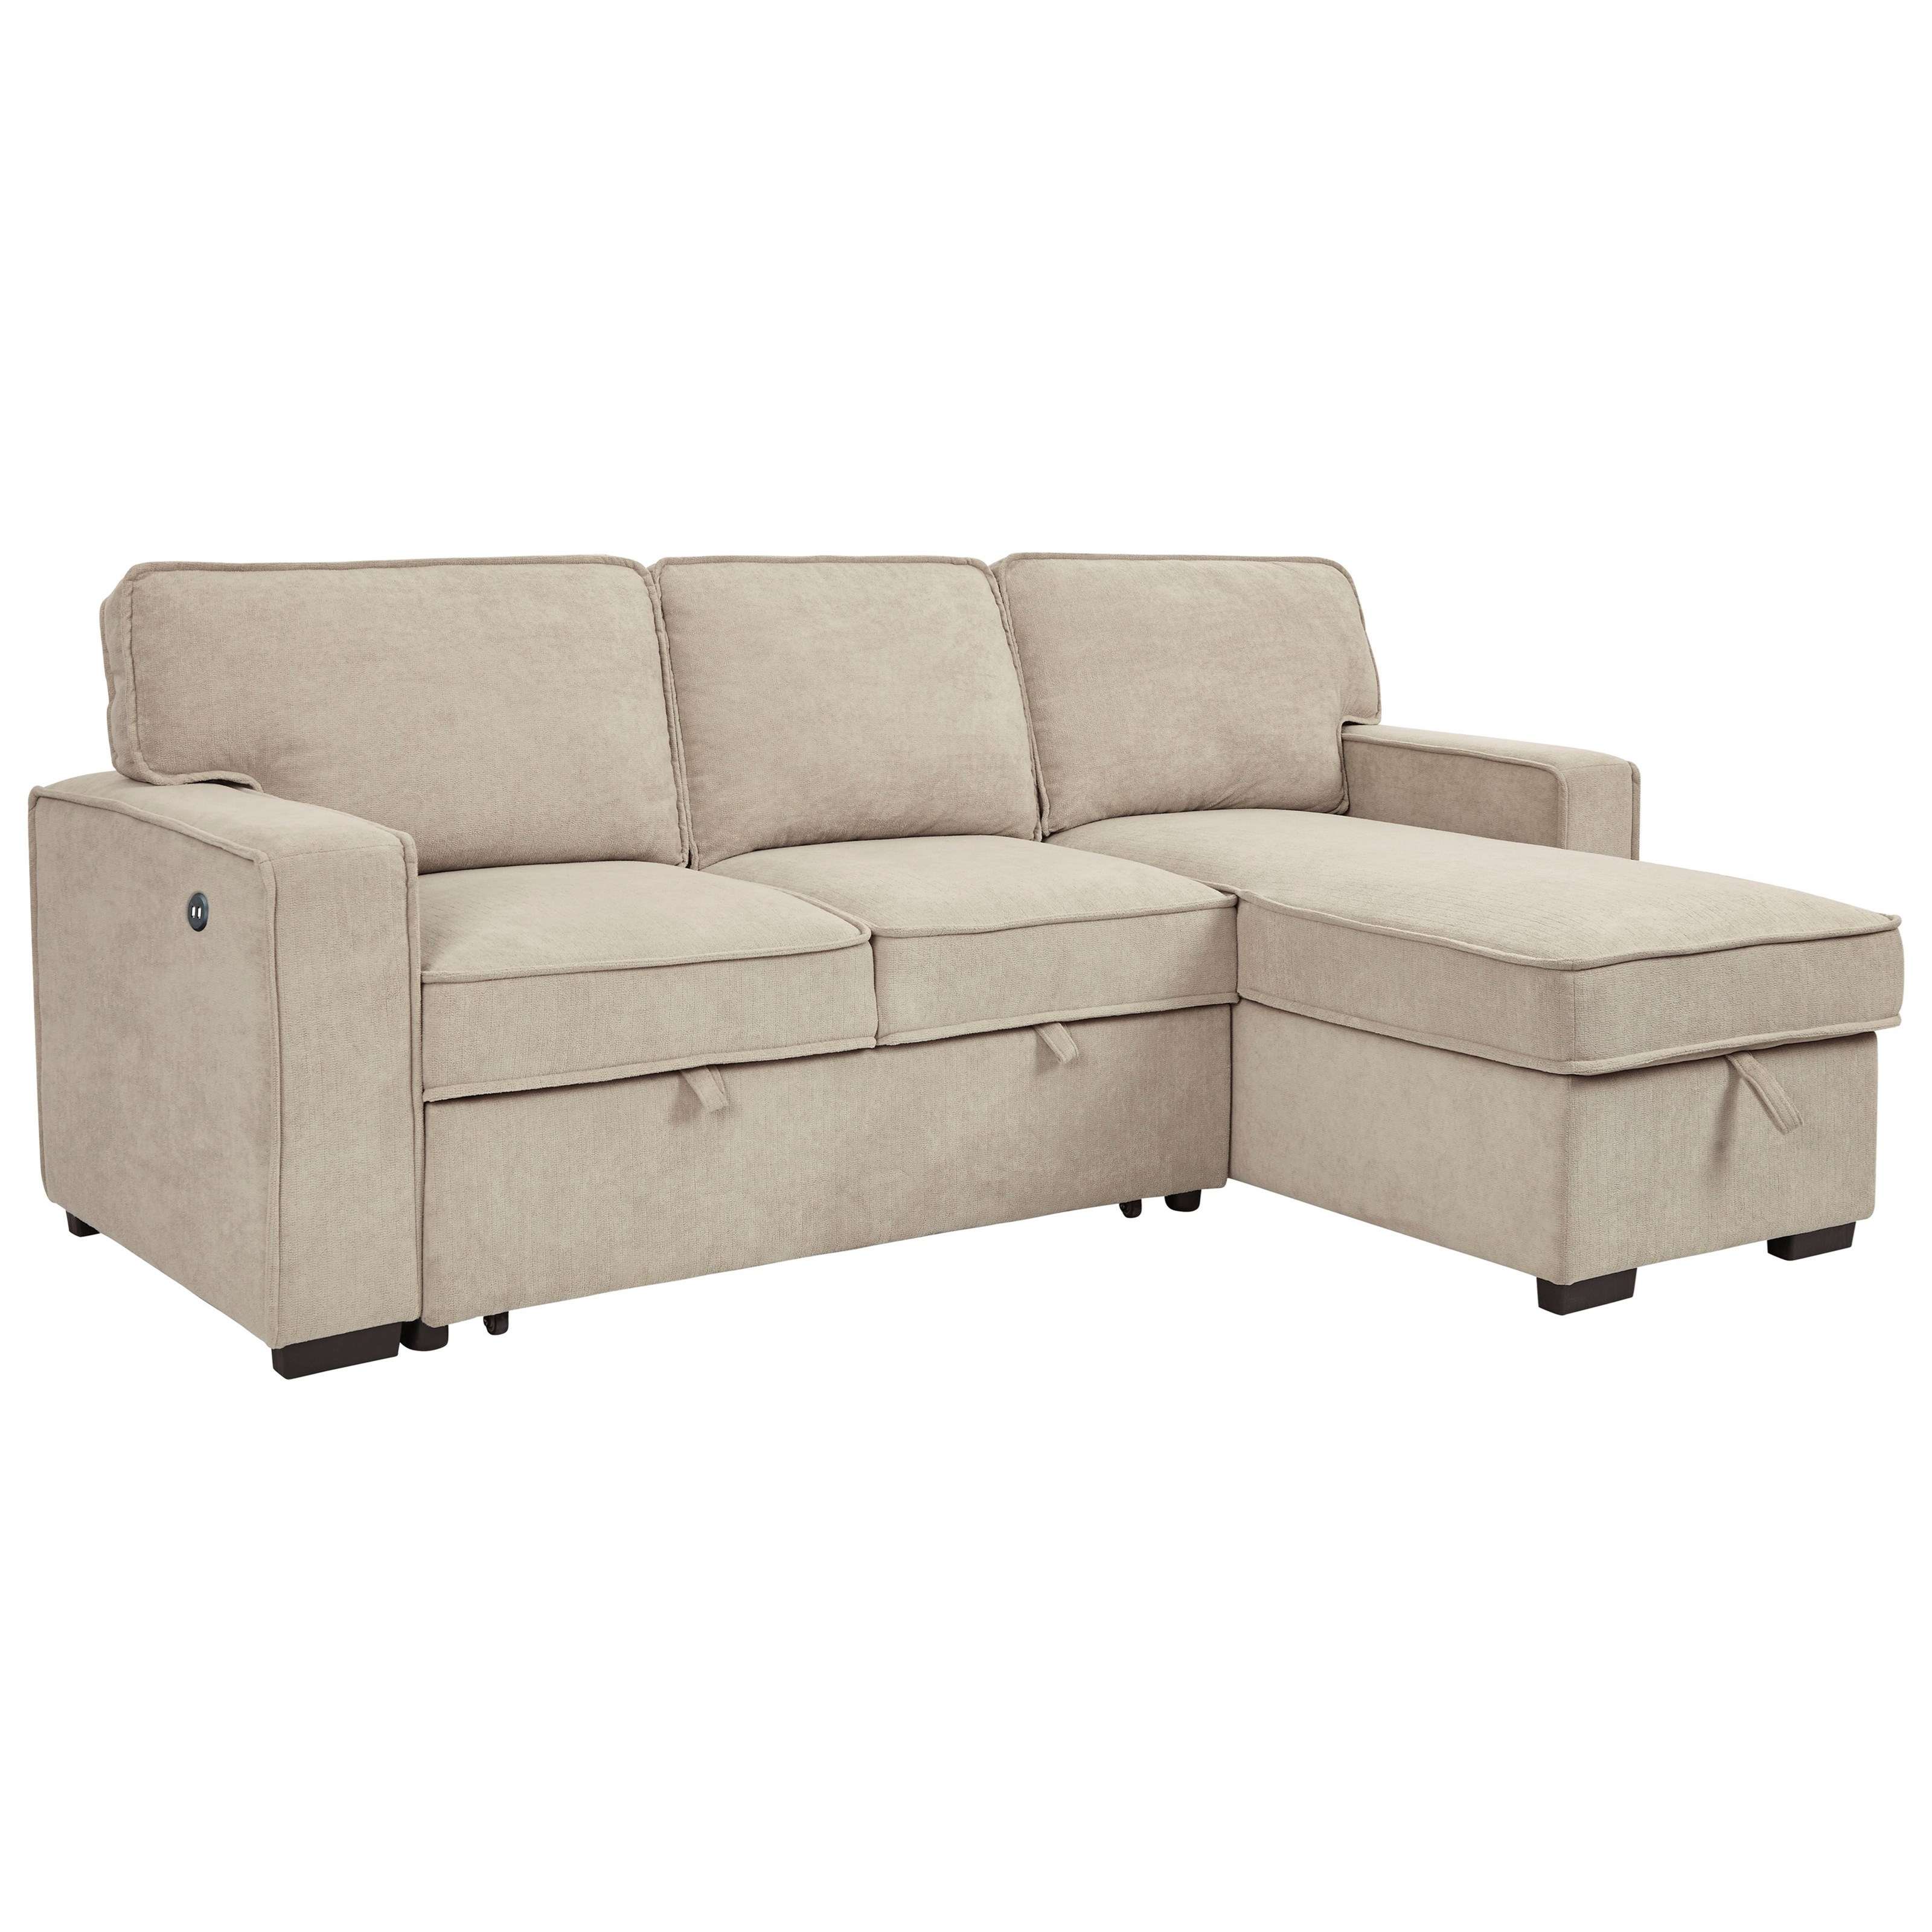 Darton Sofa Chaise with Pop Up Bed & Storage Chaise by Ashley Signature Design at Rooms and Rest